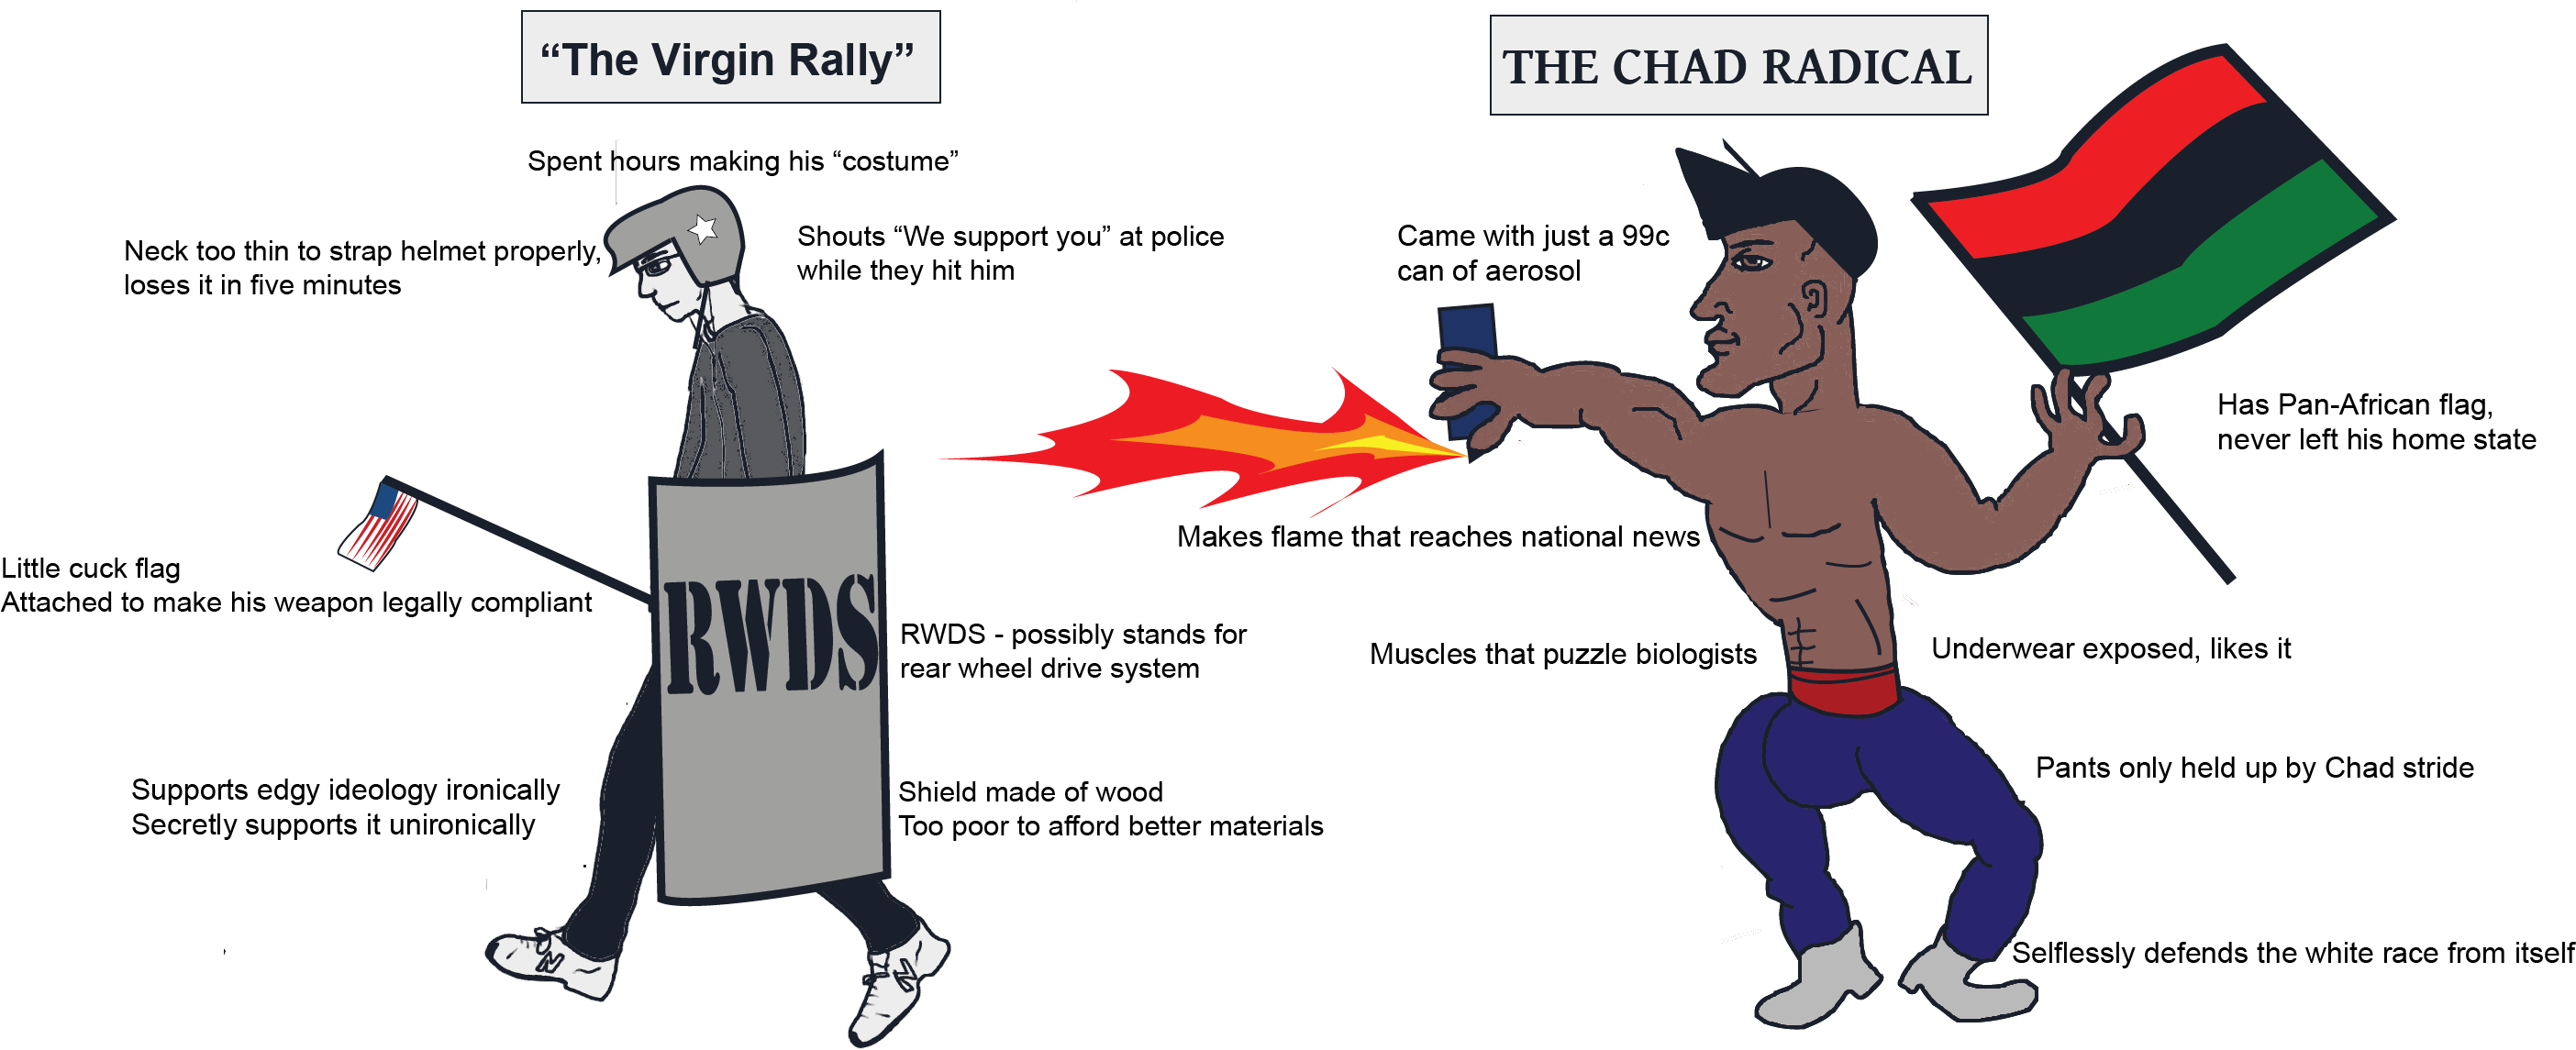 Radical Chad | 2017 Unite the Right Rally | Know Your Meme